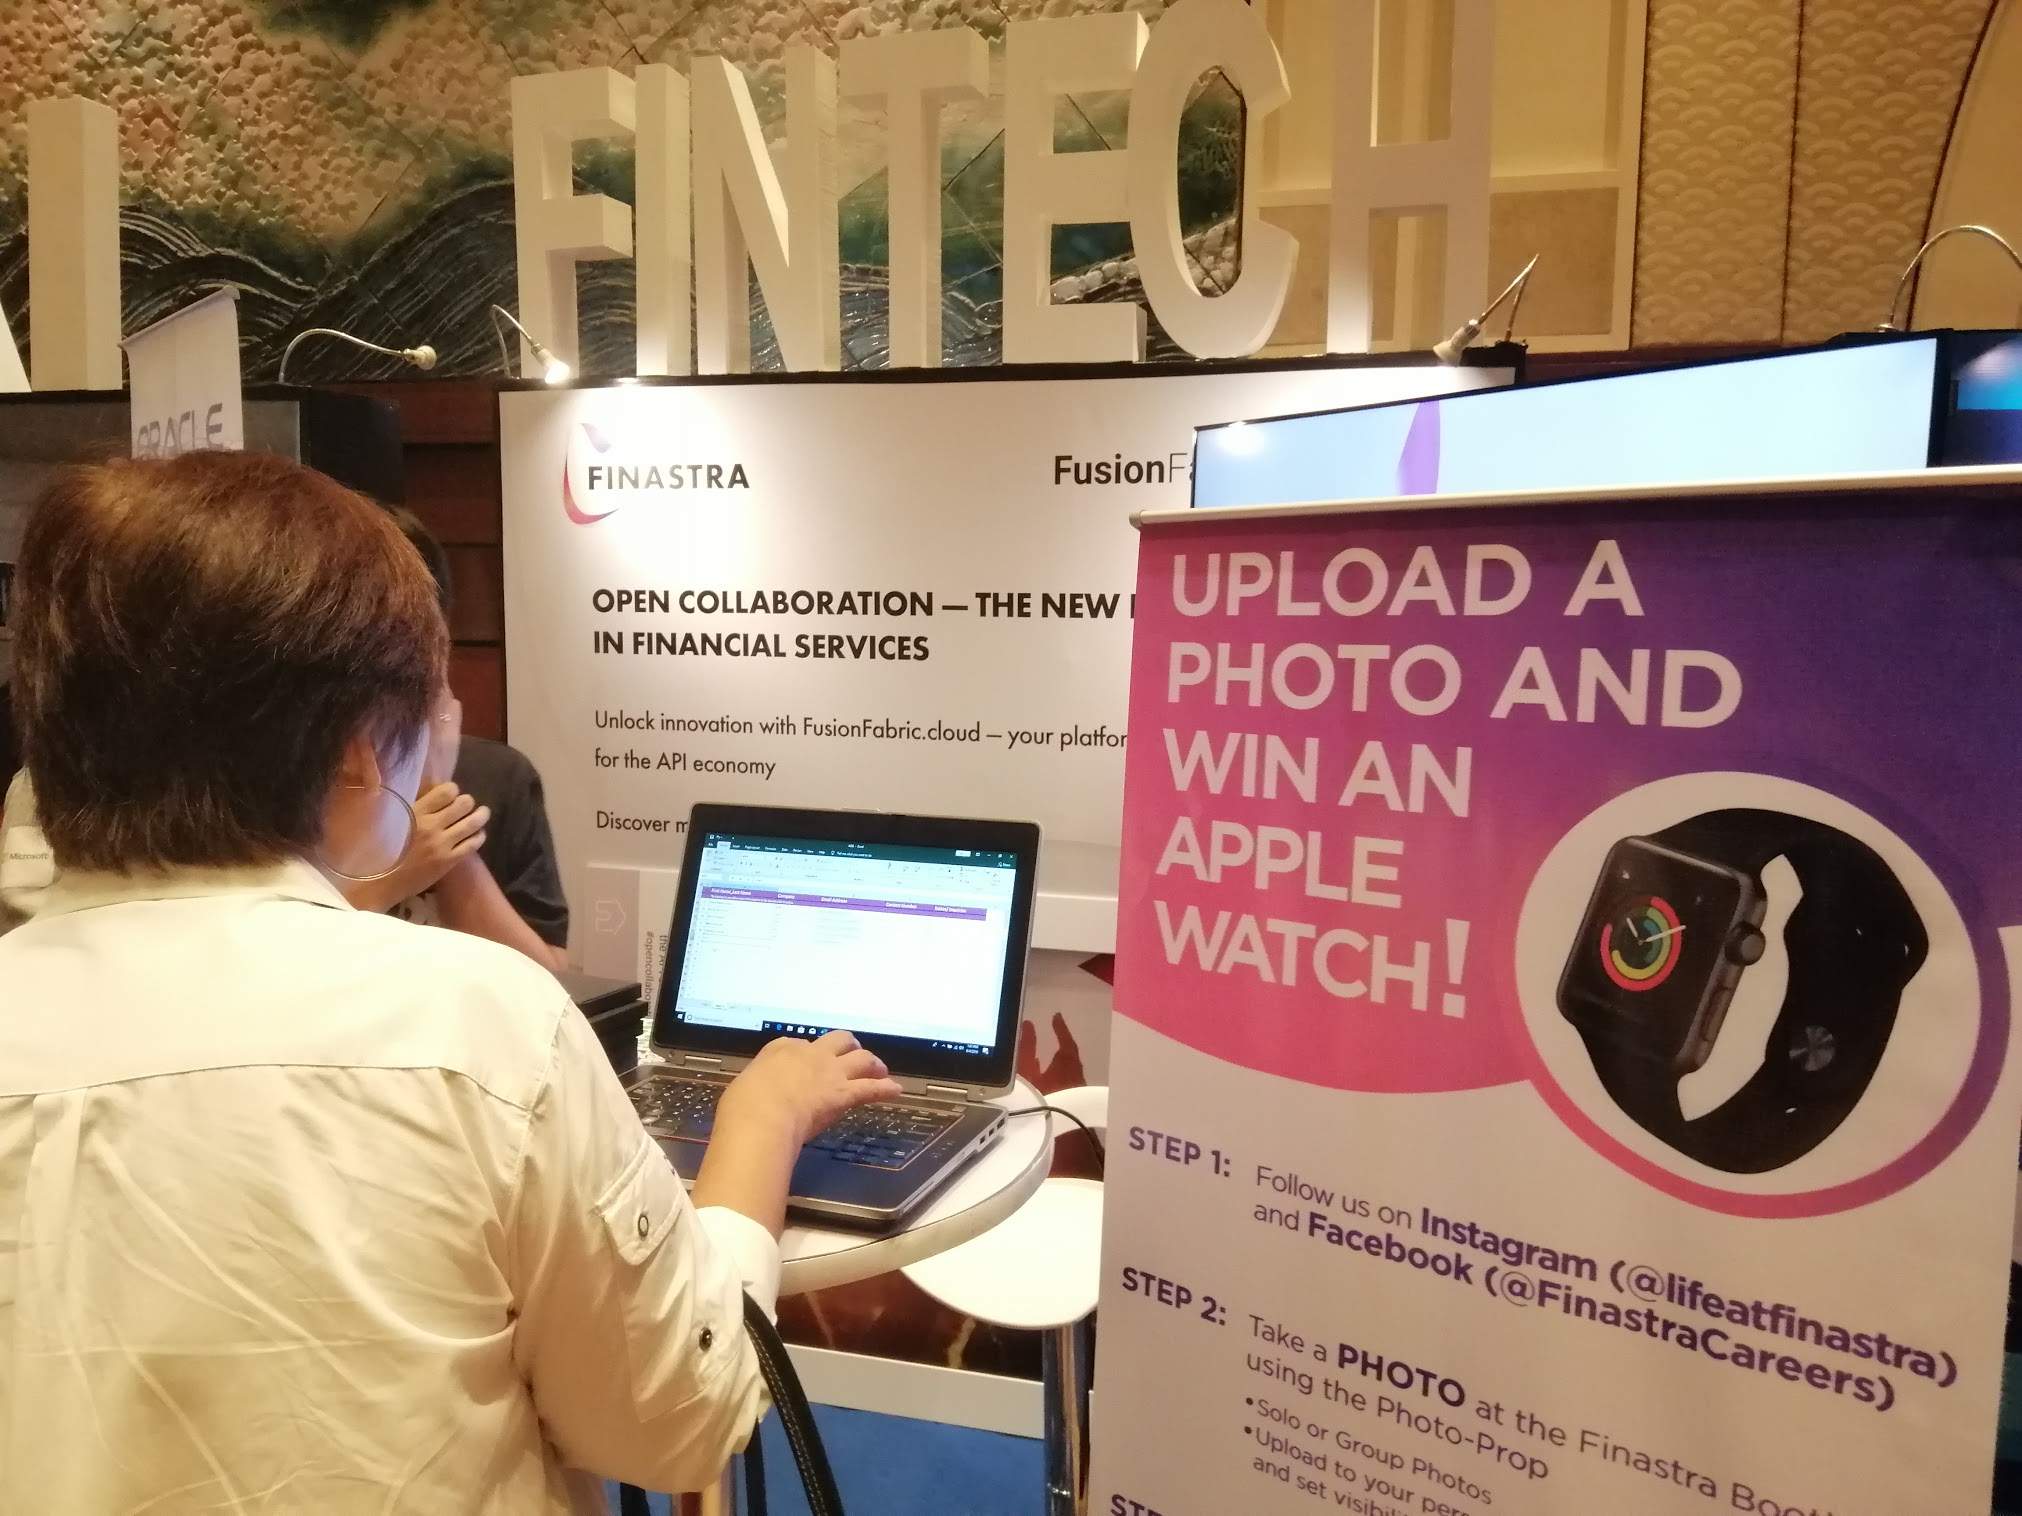 12:26 p.m. - Take part in Finastra's raffle!